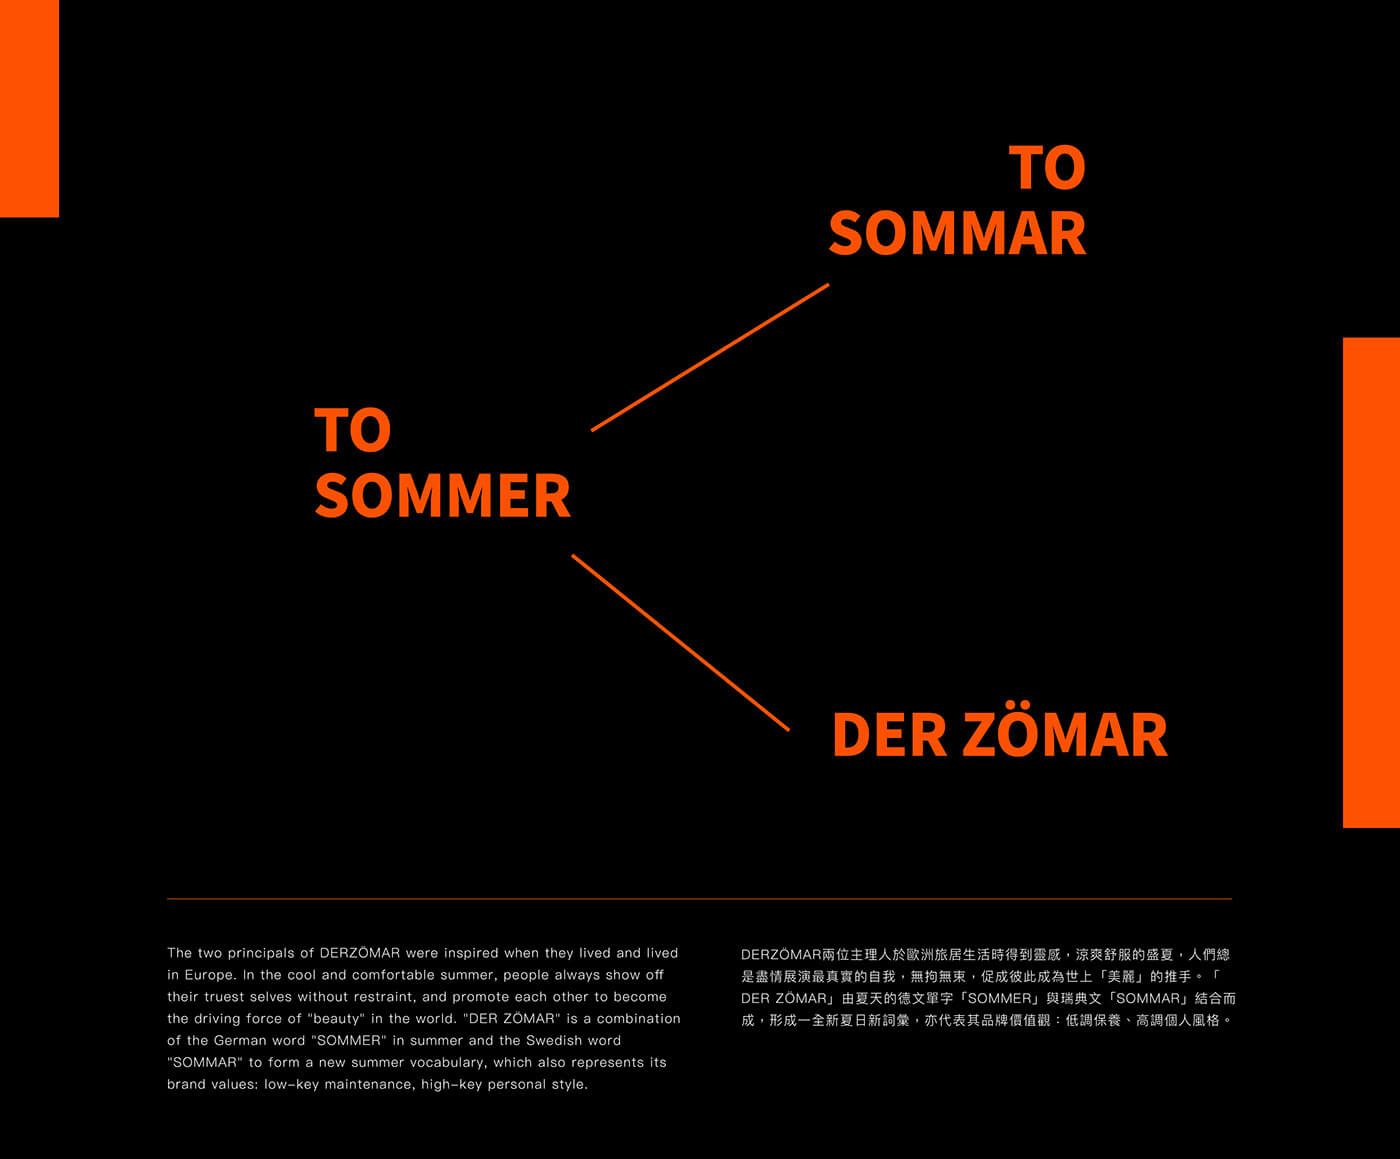 Der ZÖMAR Skincare Branding & Packaging